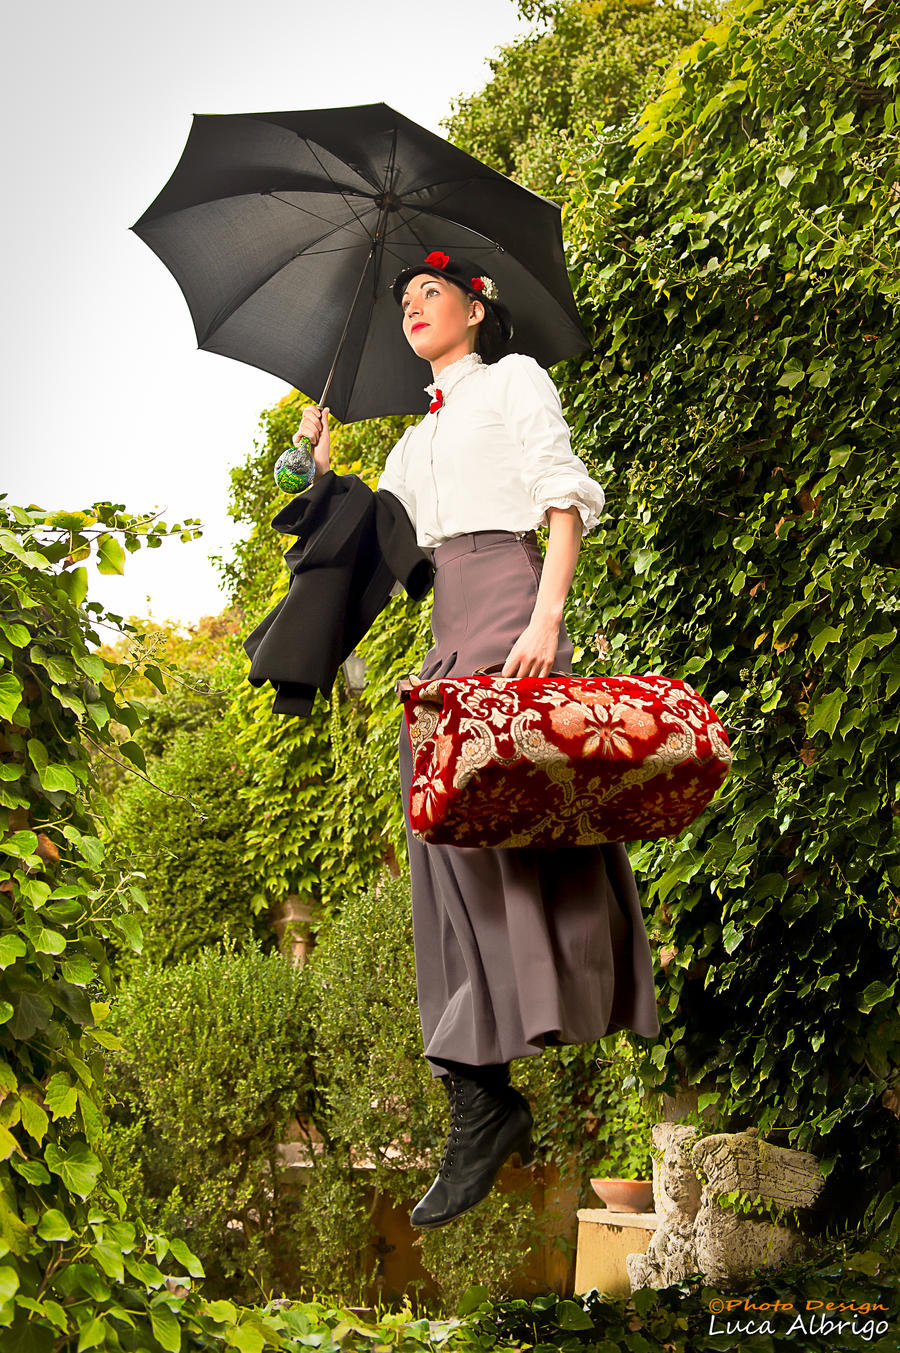 Mary Poppins: my work is done